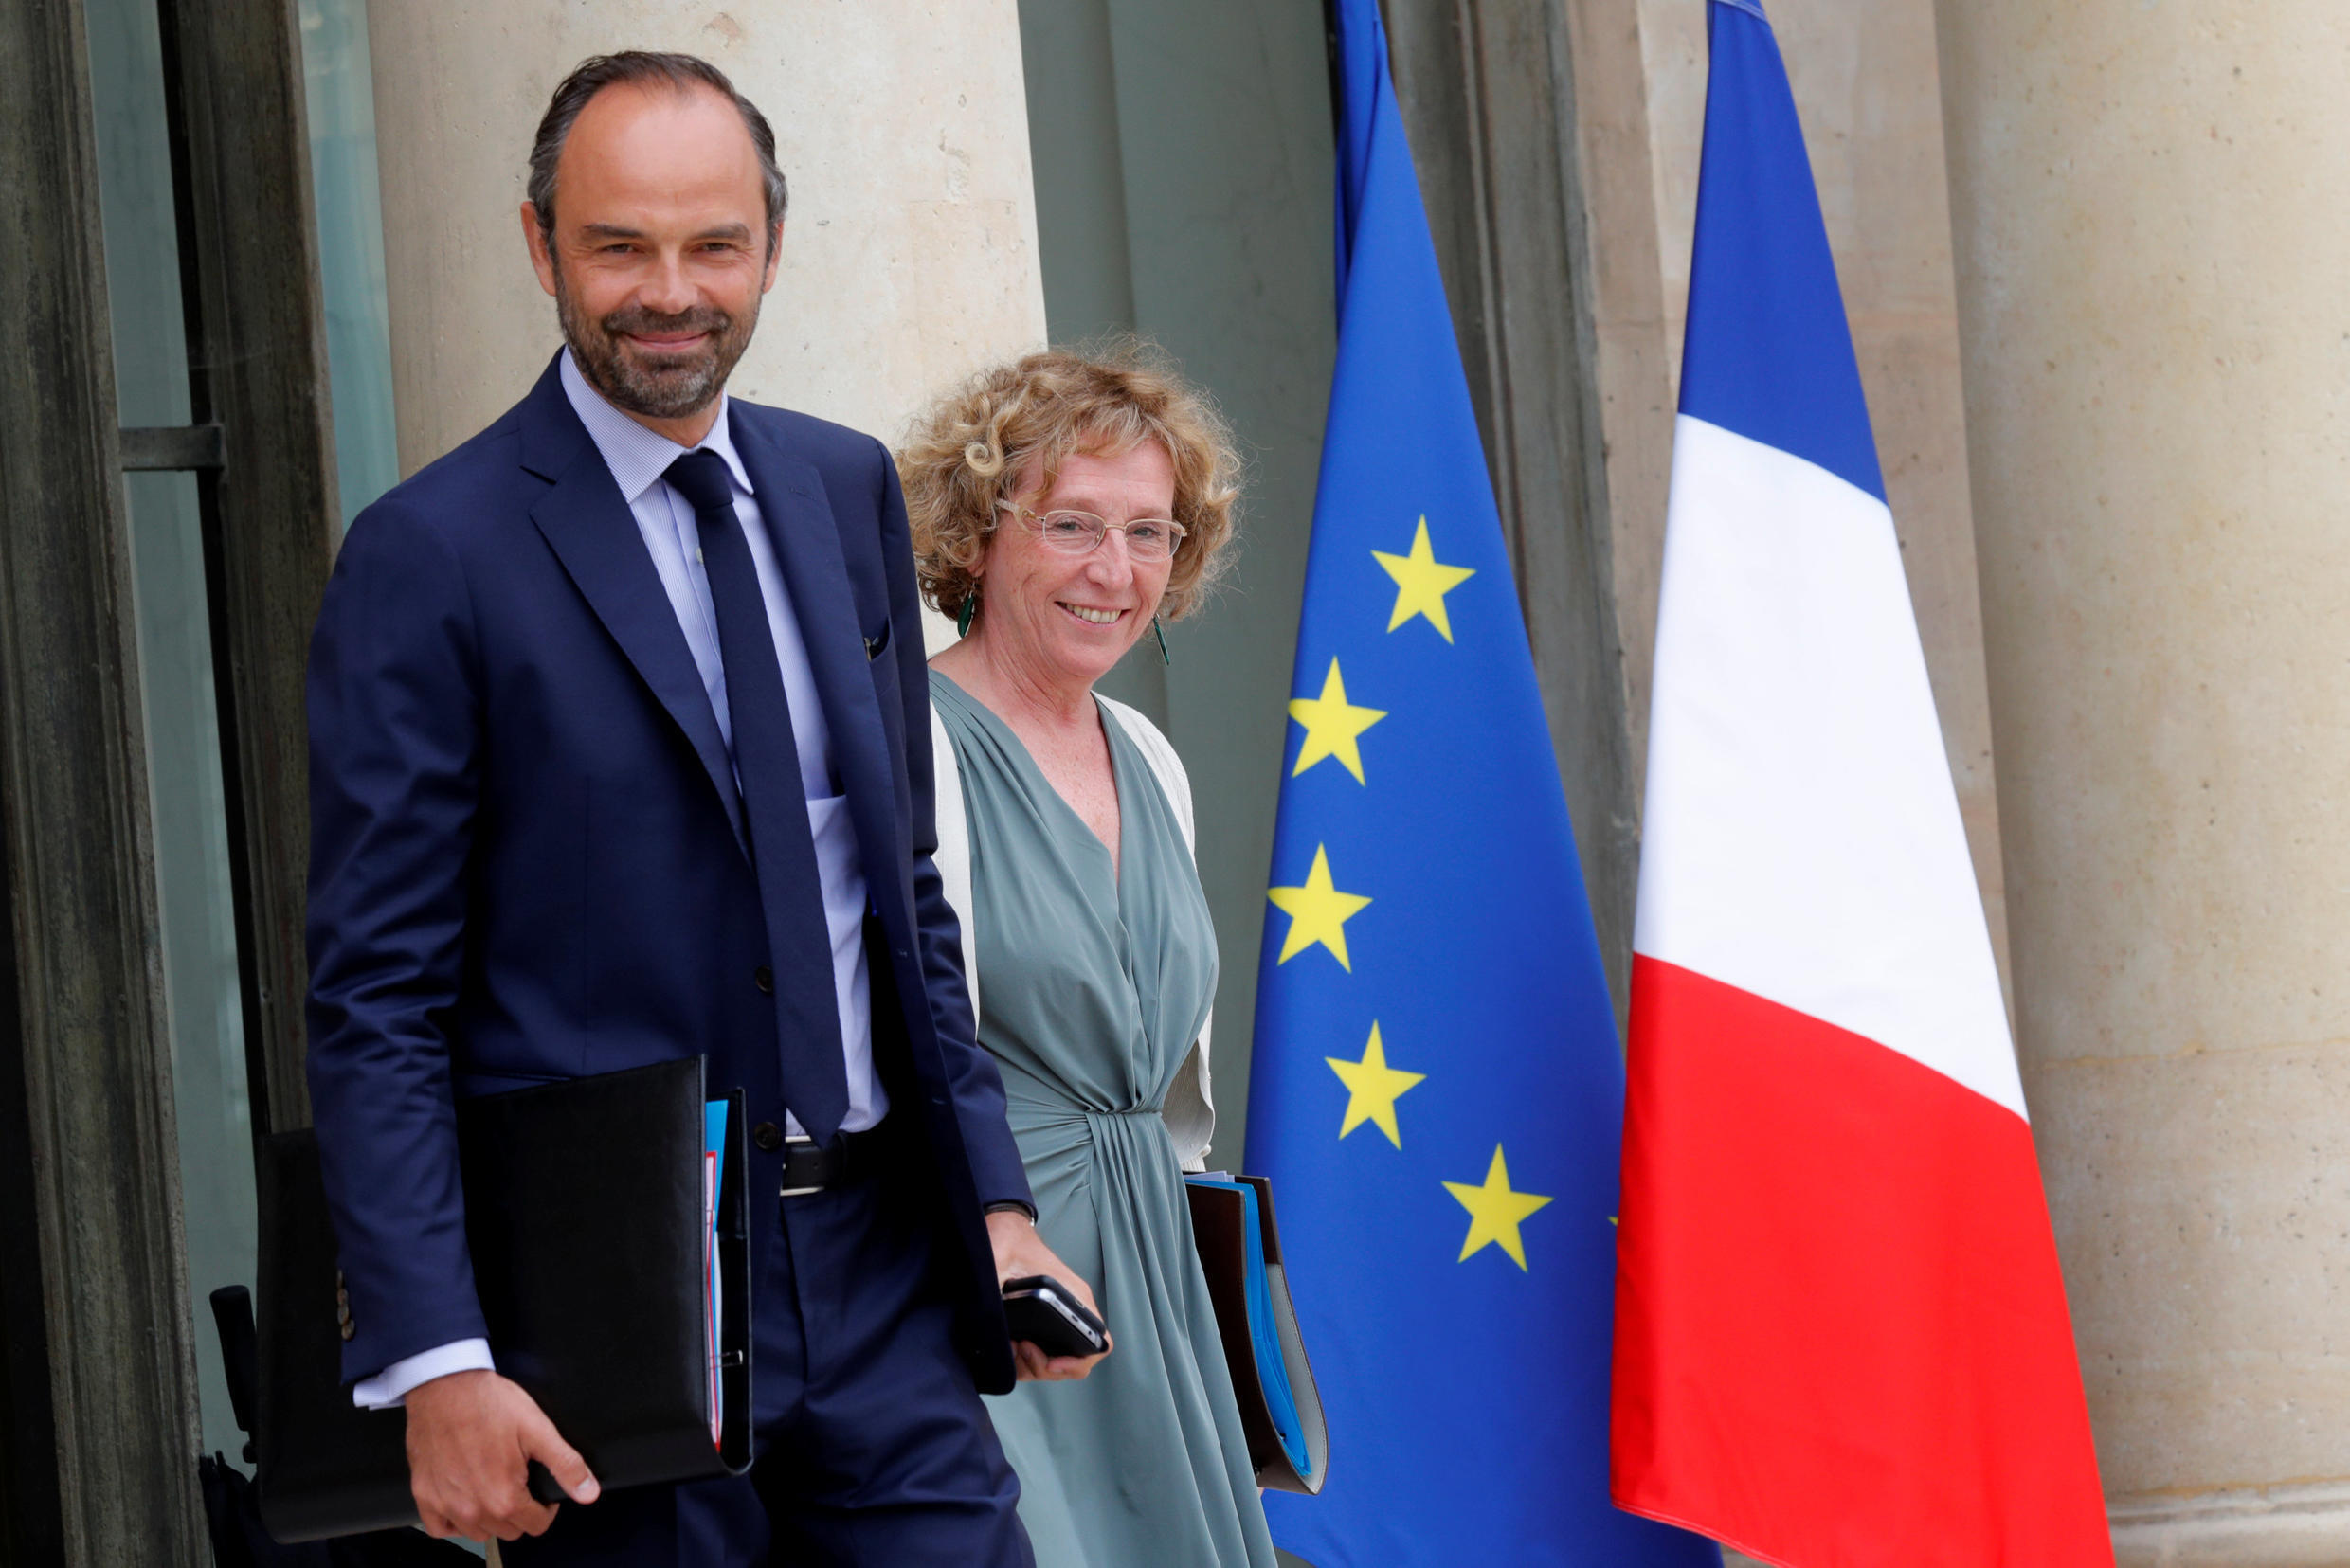 Prime Minister Edouard Philippe with Labour Minister Muriel Pénicaud